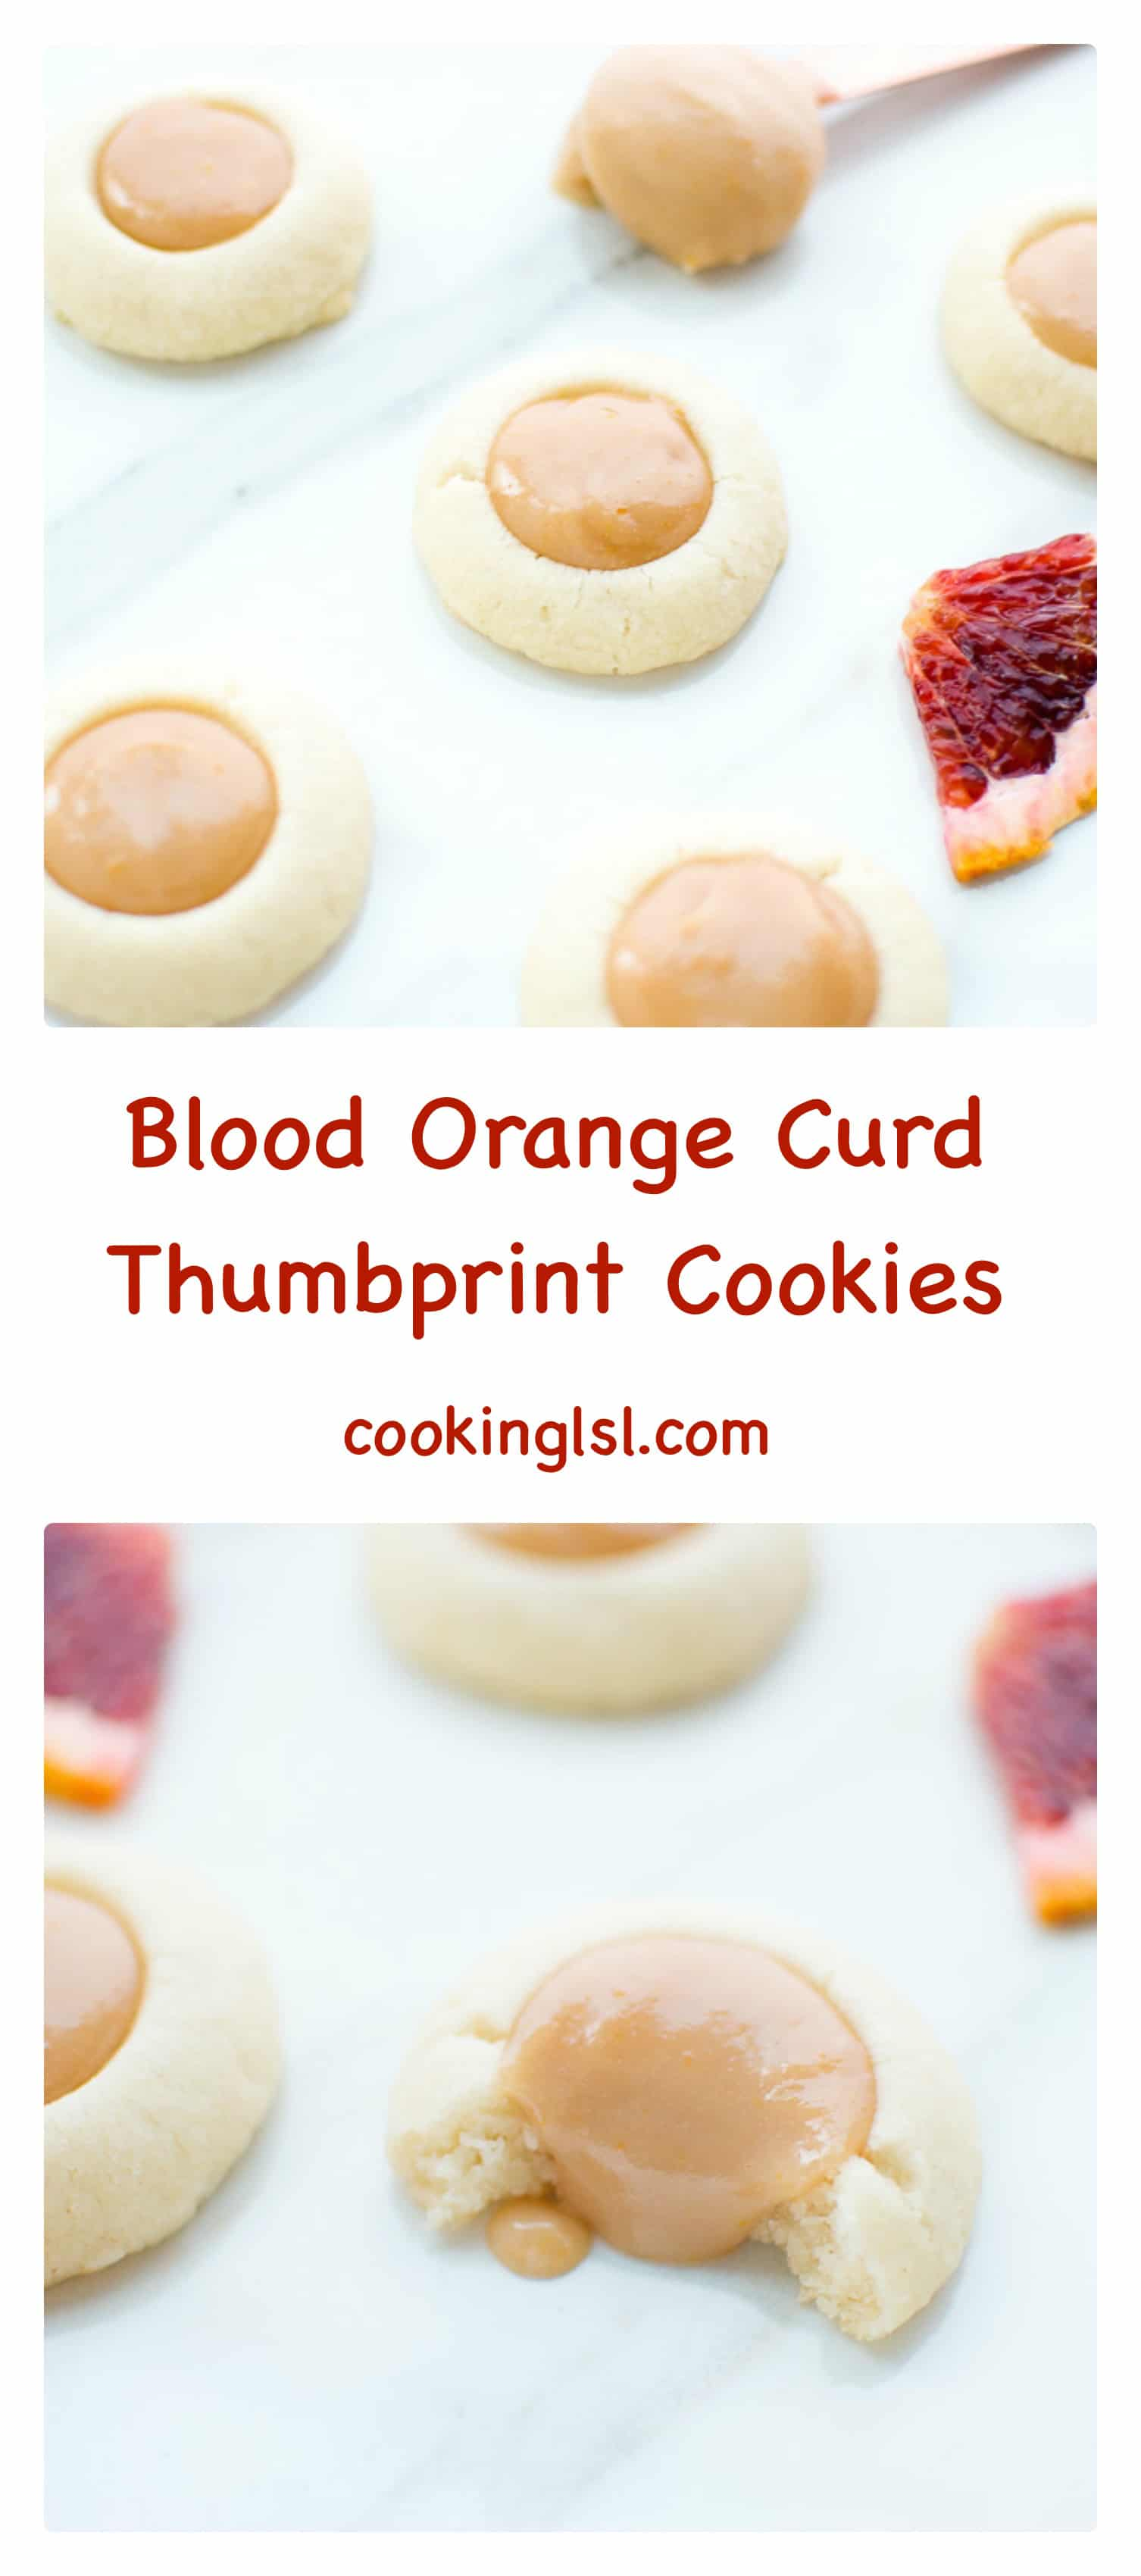 Blood-Orange-Filled-Thumbprint-Cookies